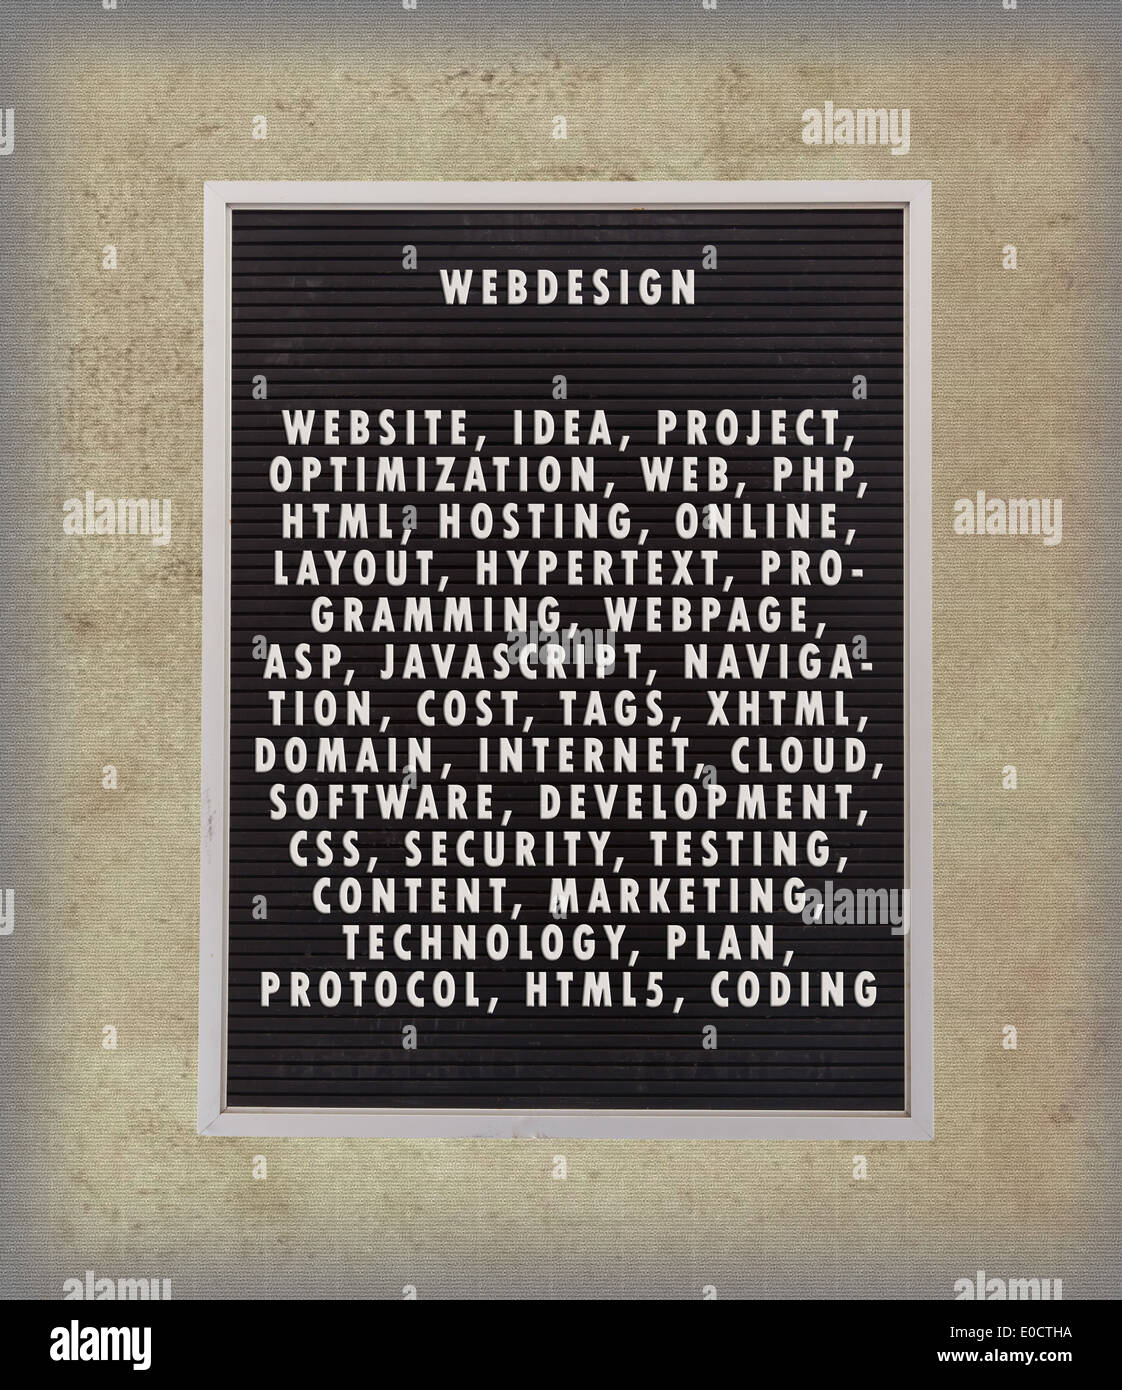 Webdesign concept in plastic letters on very old menu board vintage look